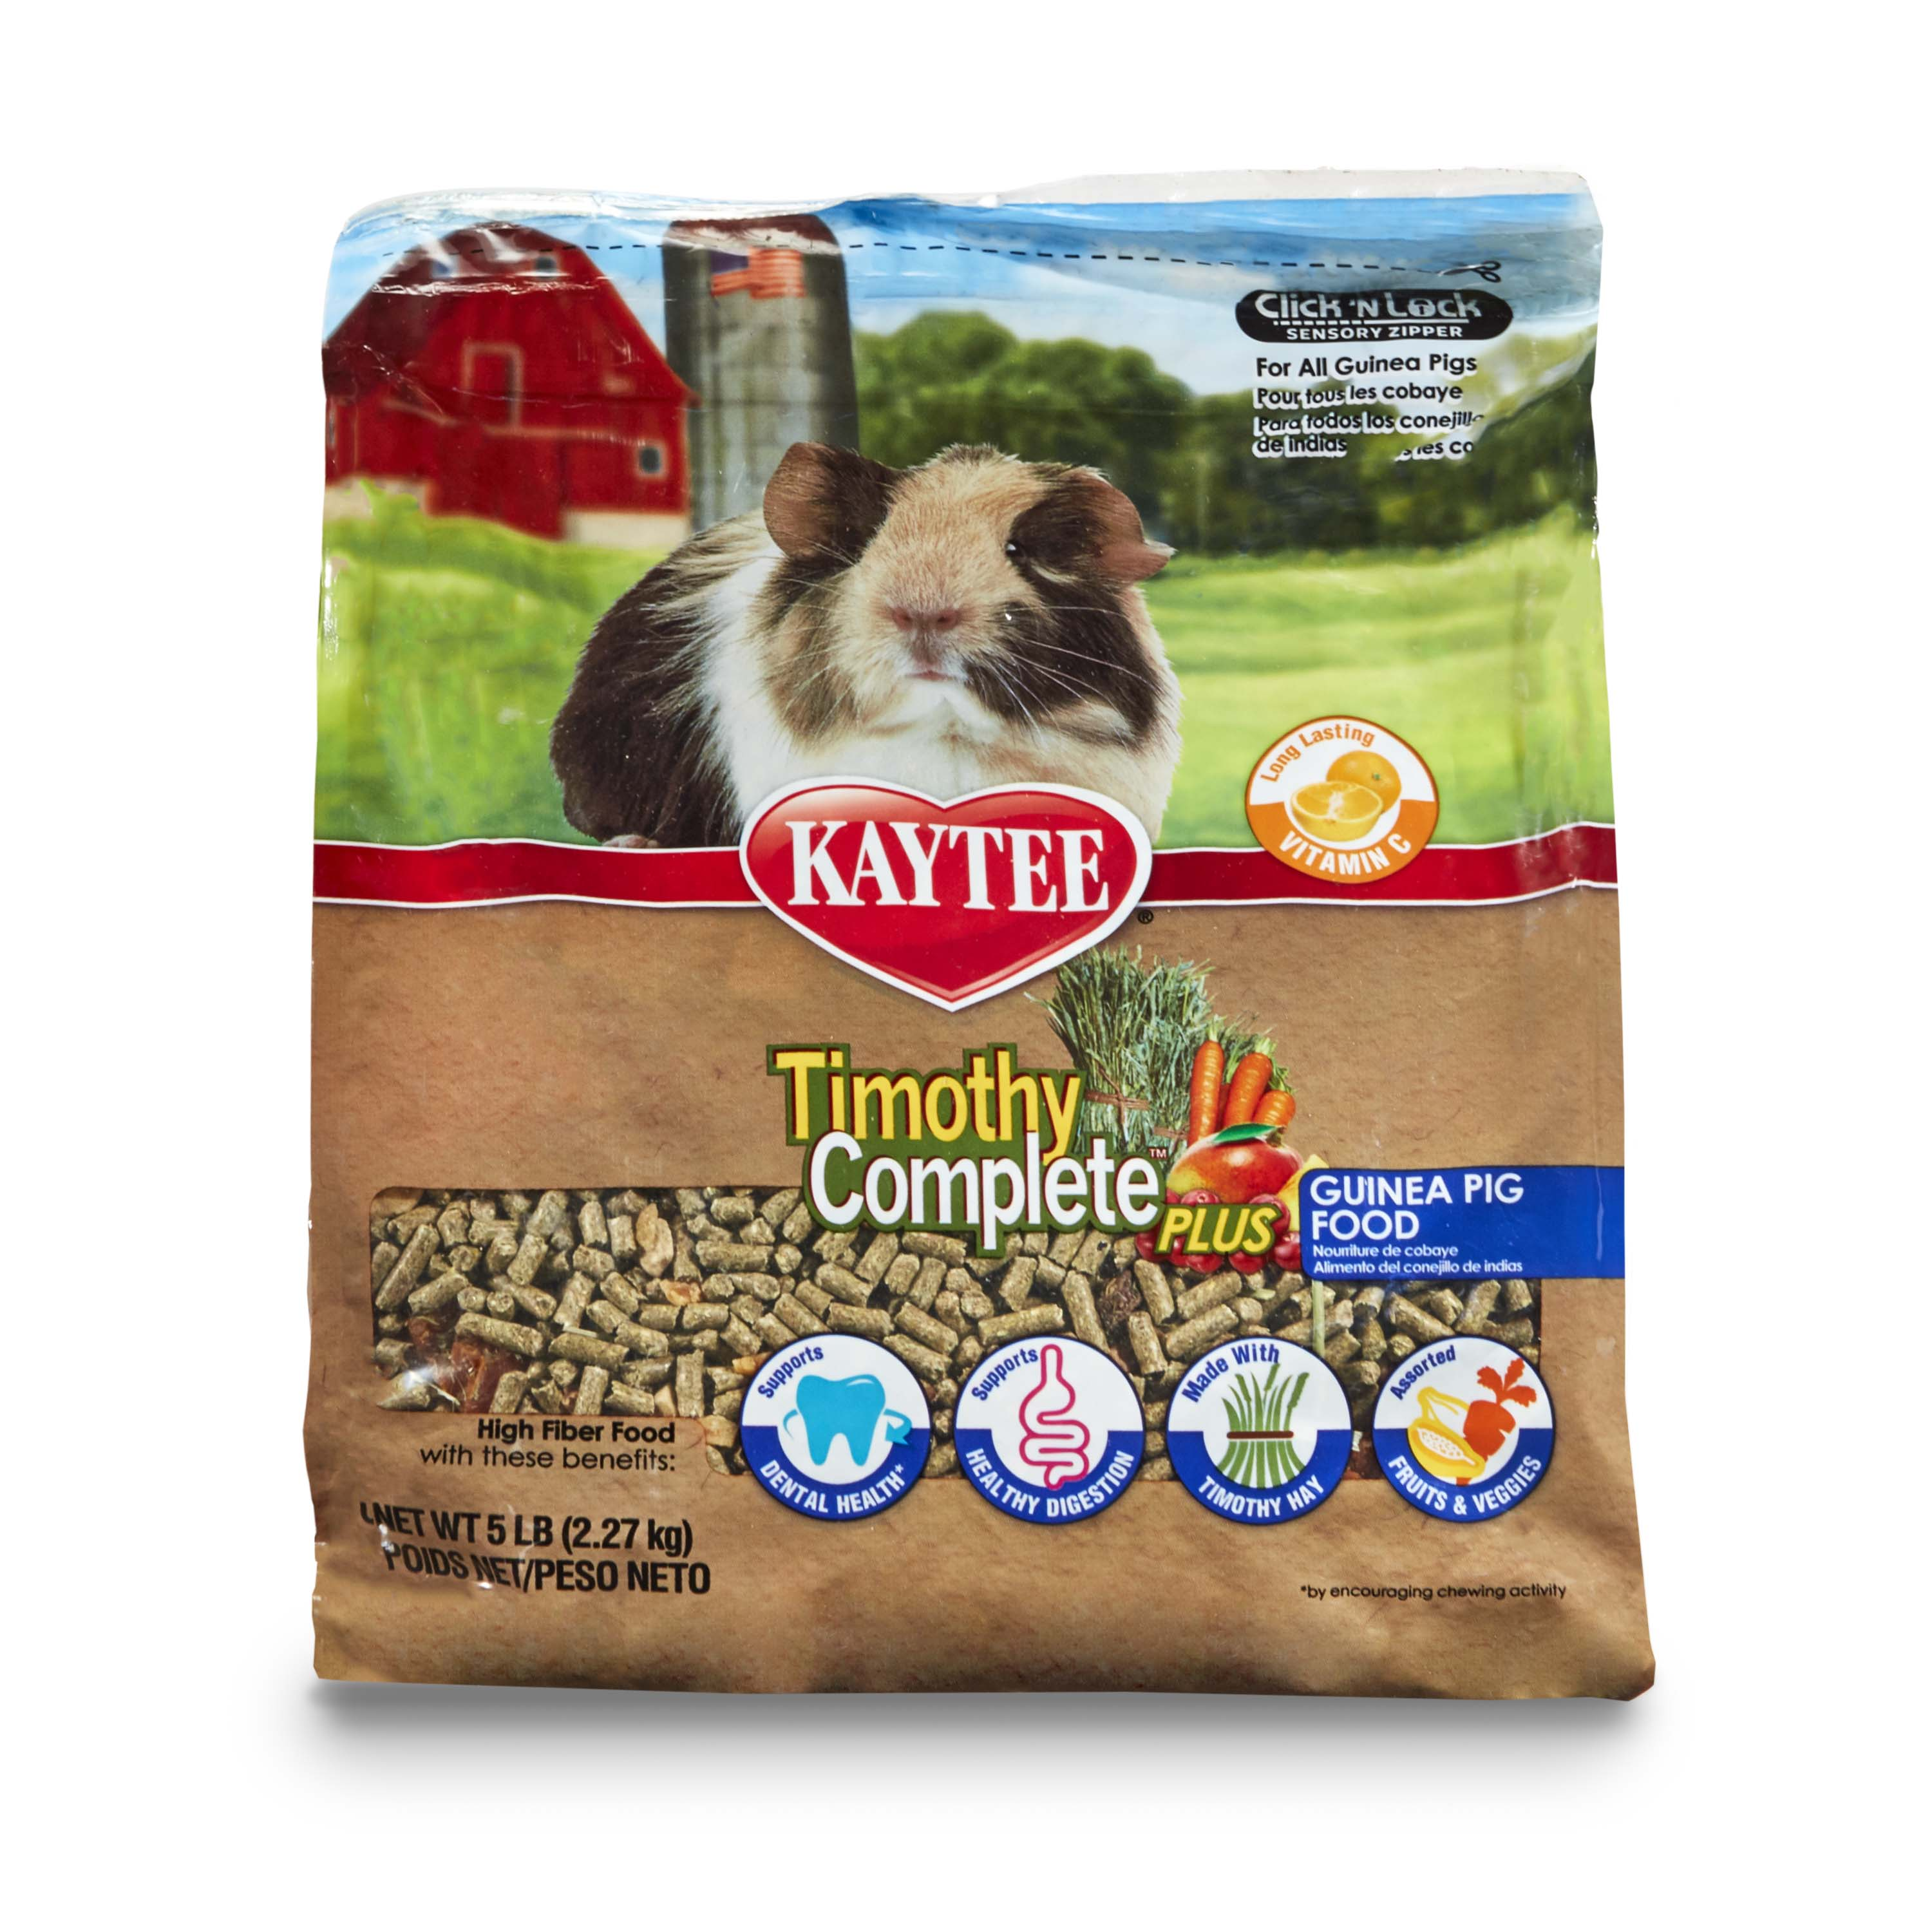 Kaytee Timothy Complete Guinea Pig Food - Plus Fruits & Vegetables